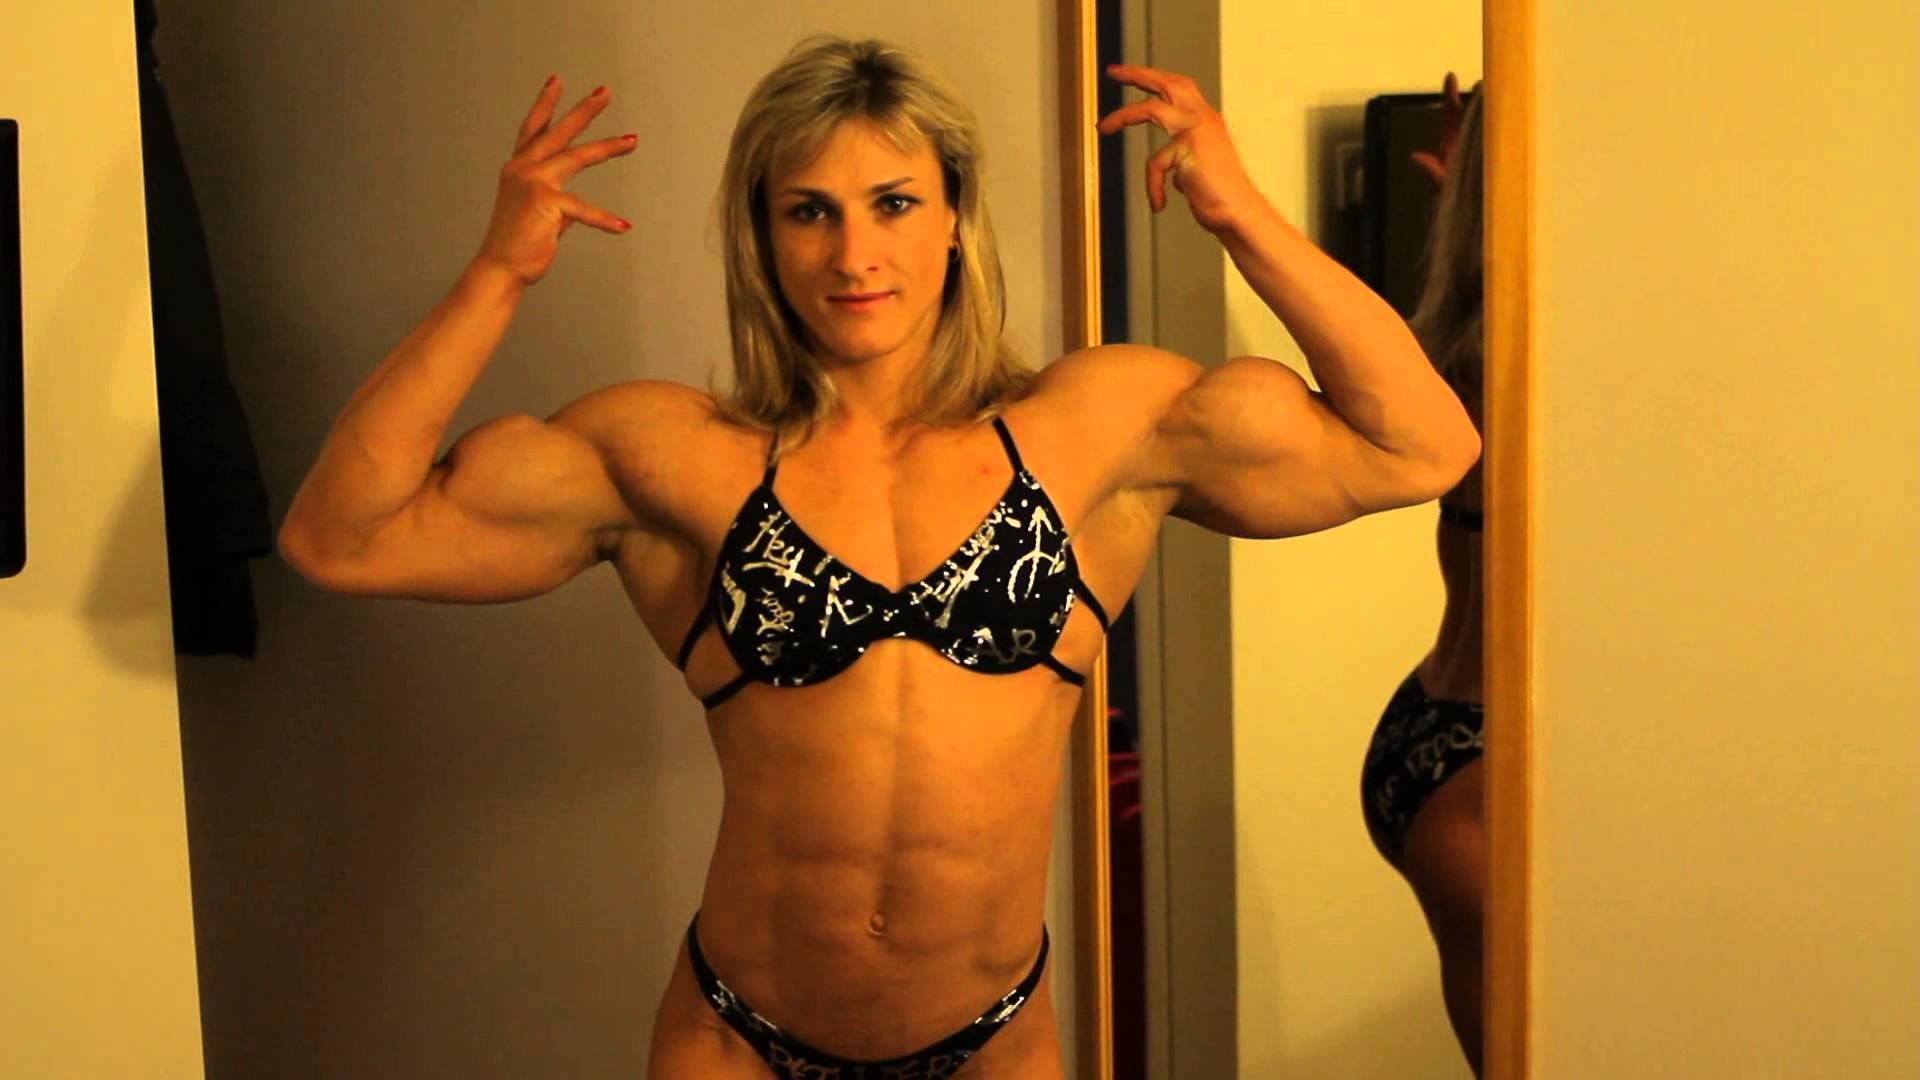 Stacy Killion – Great Biceps